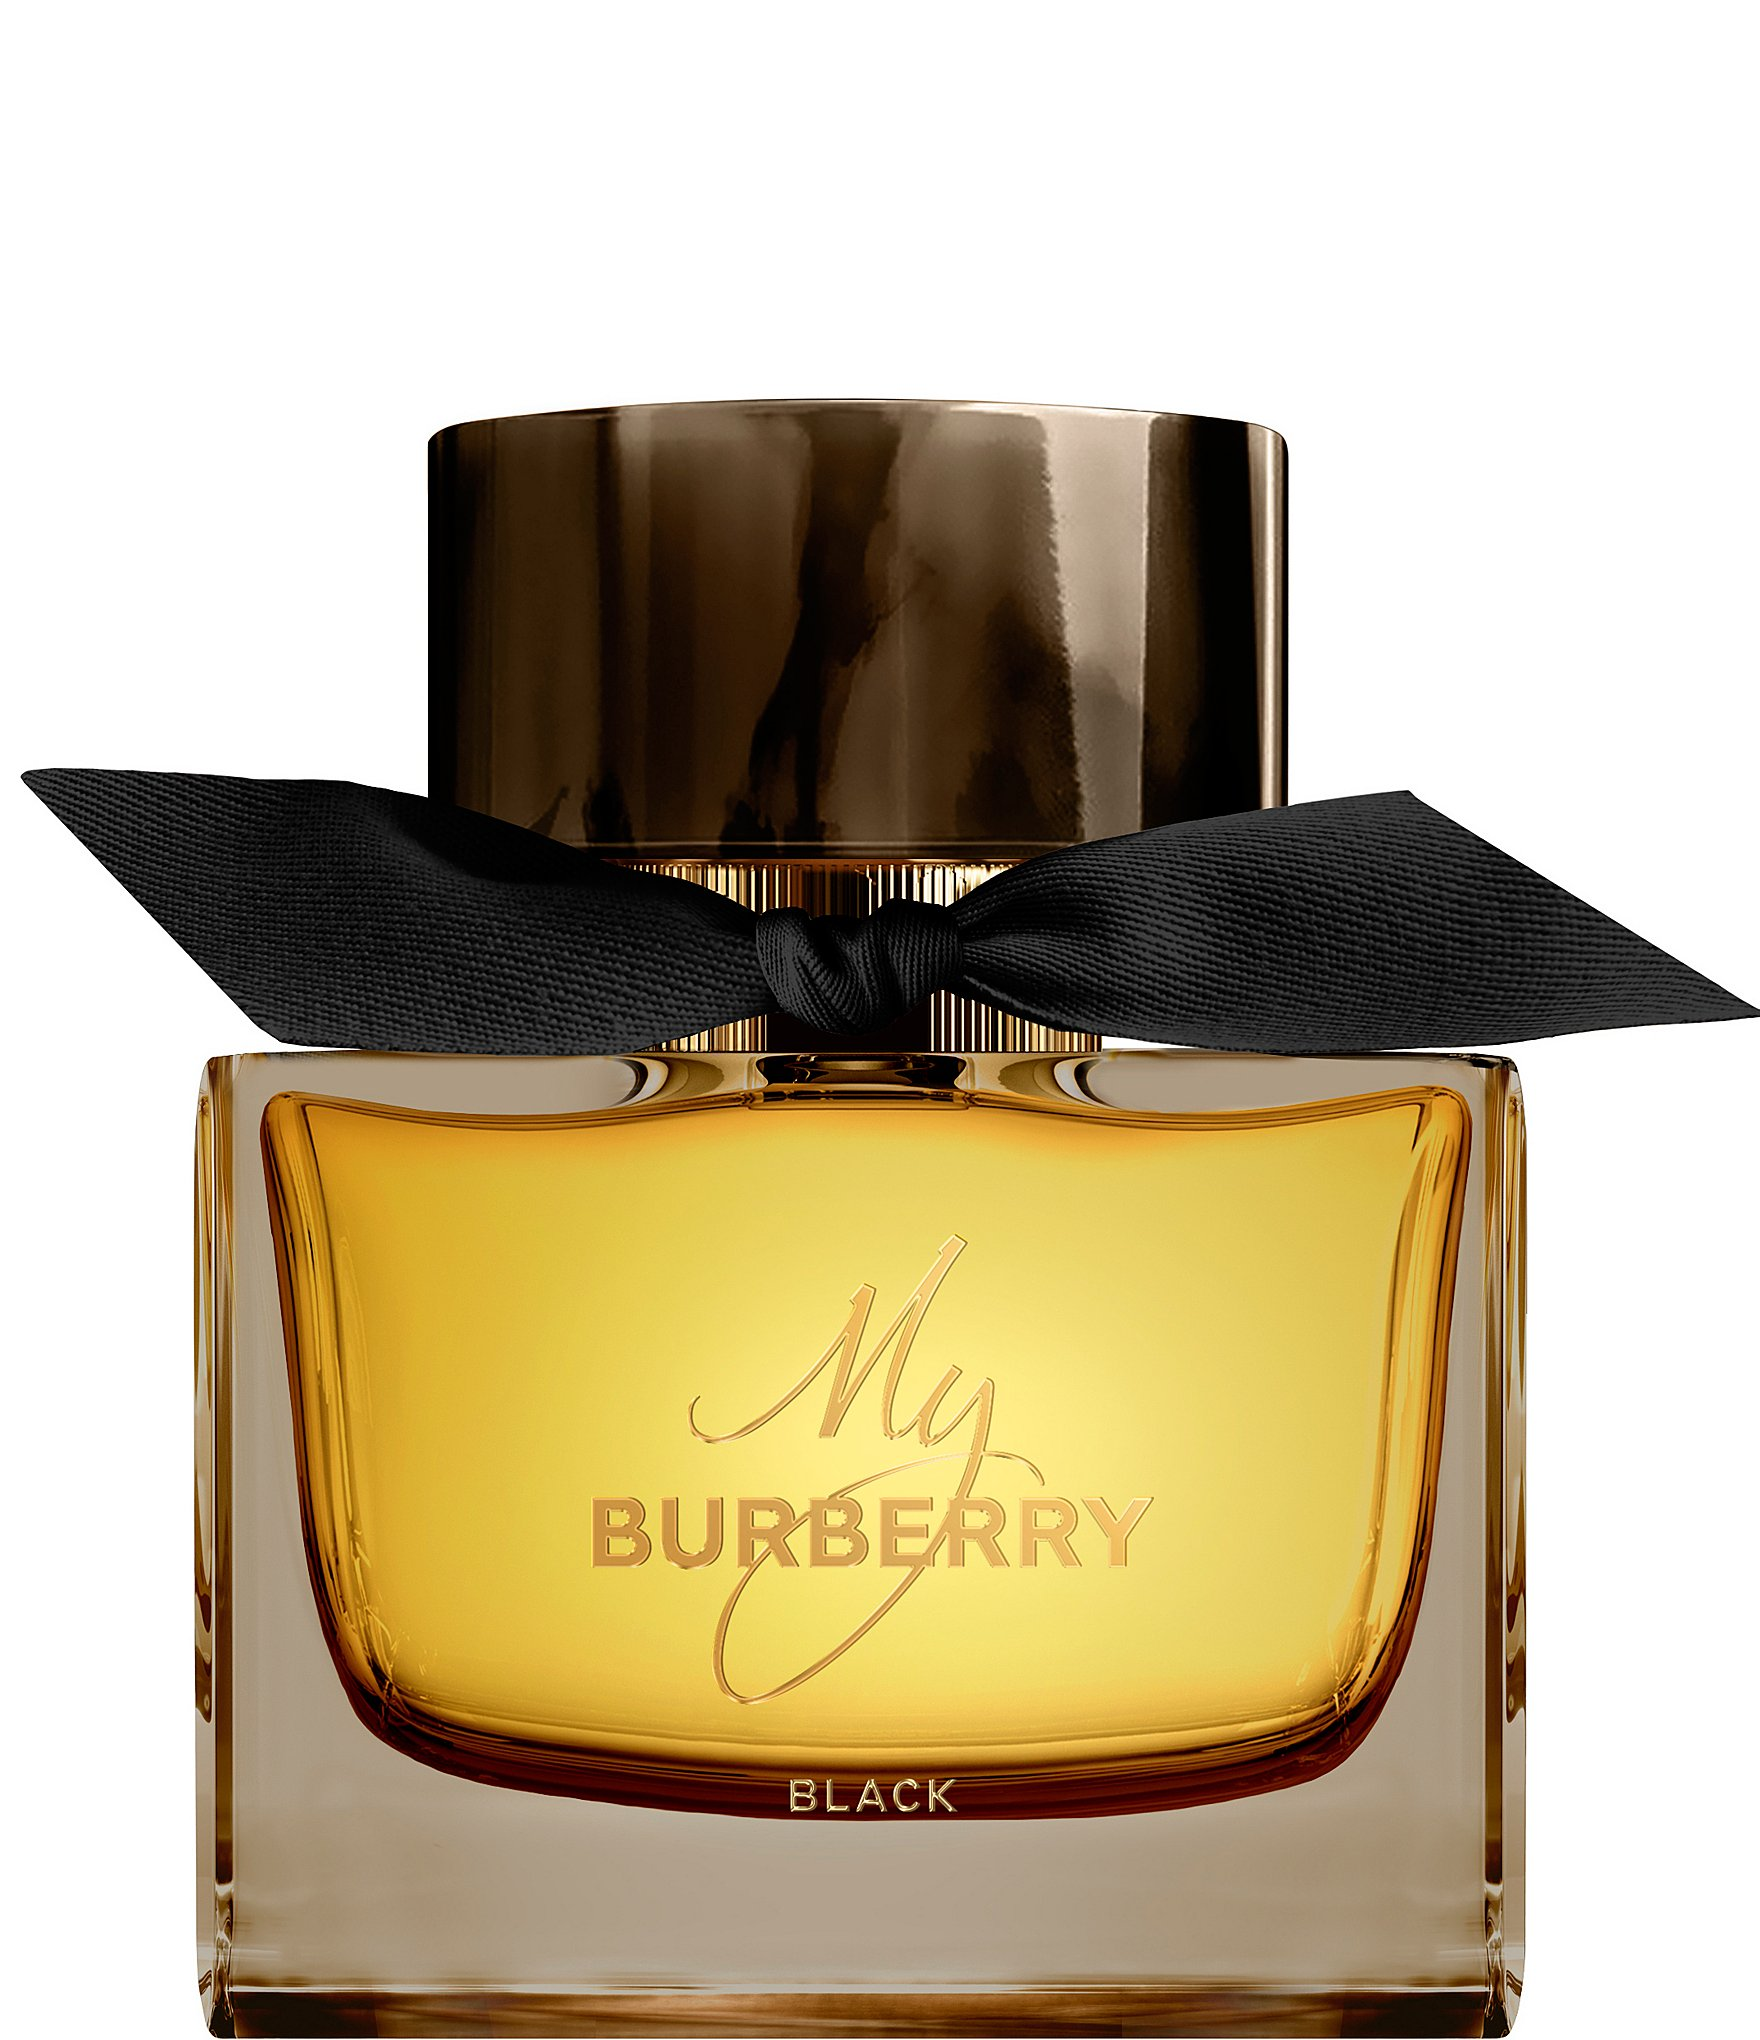 burberry my burberry black parfum dillards. Black Bedroom Furniture Sets. Home Design Ideas